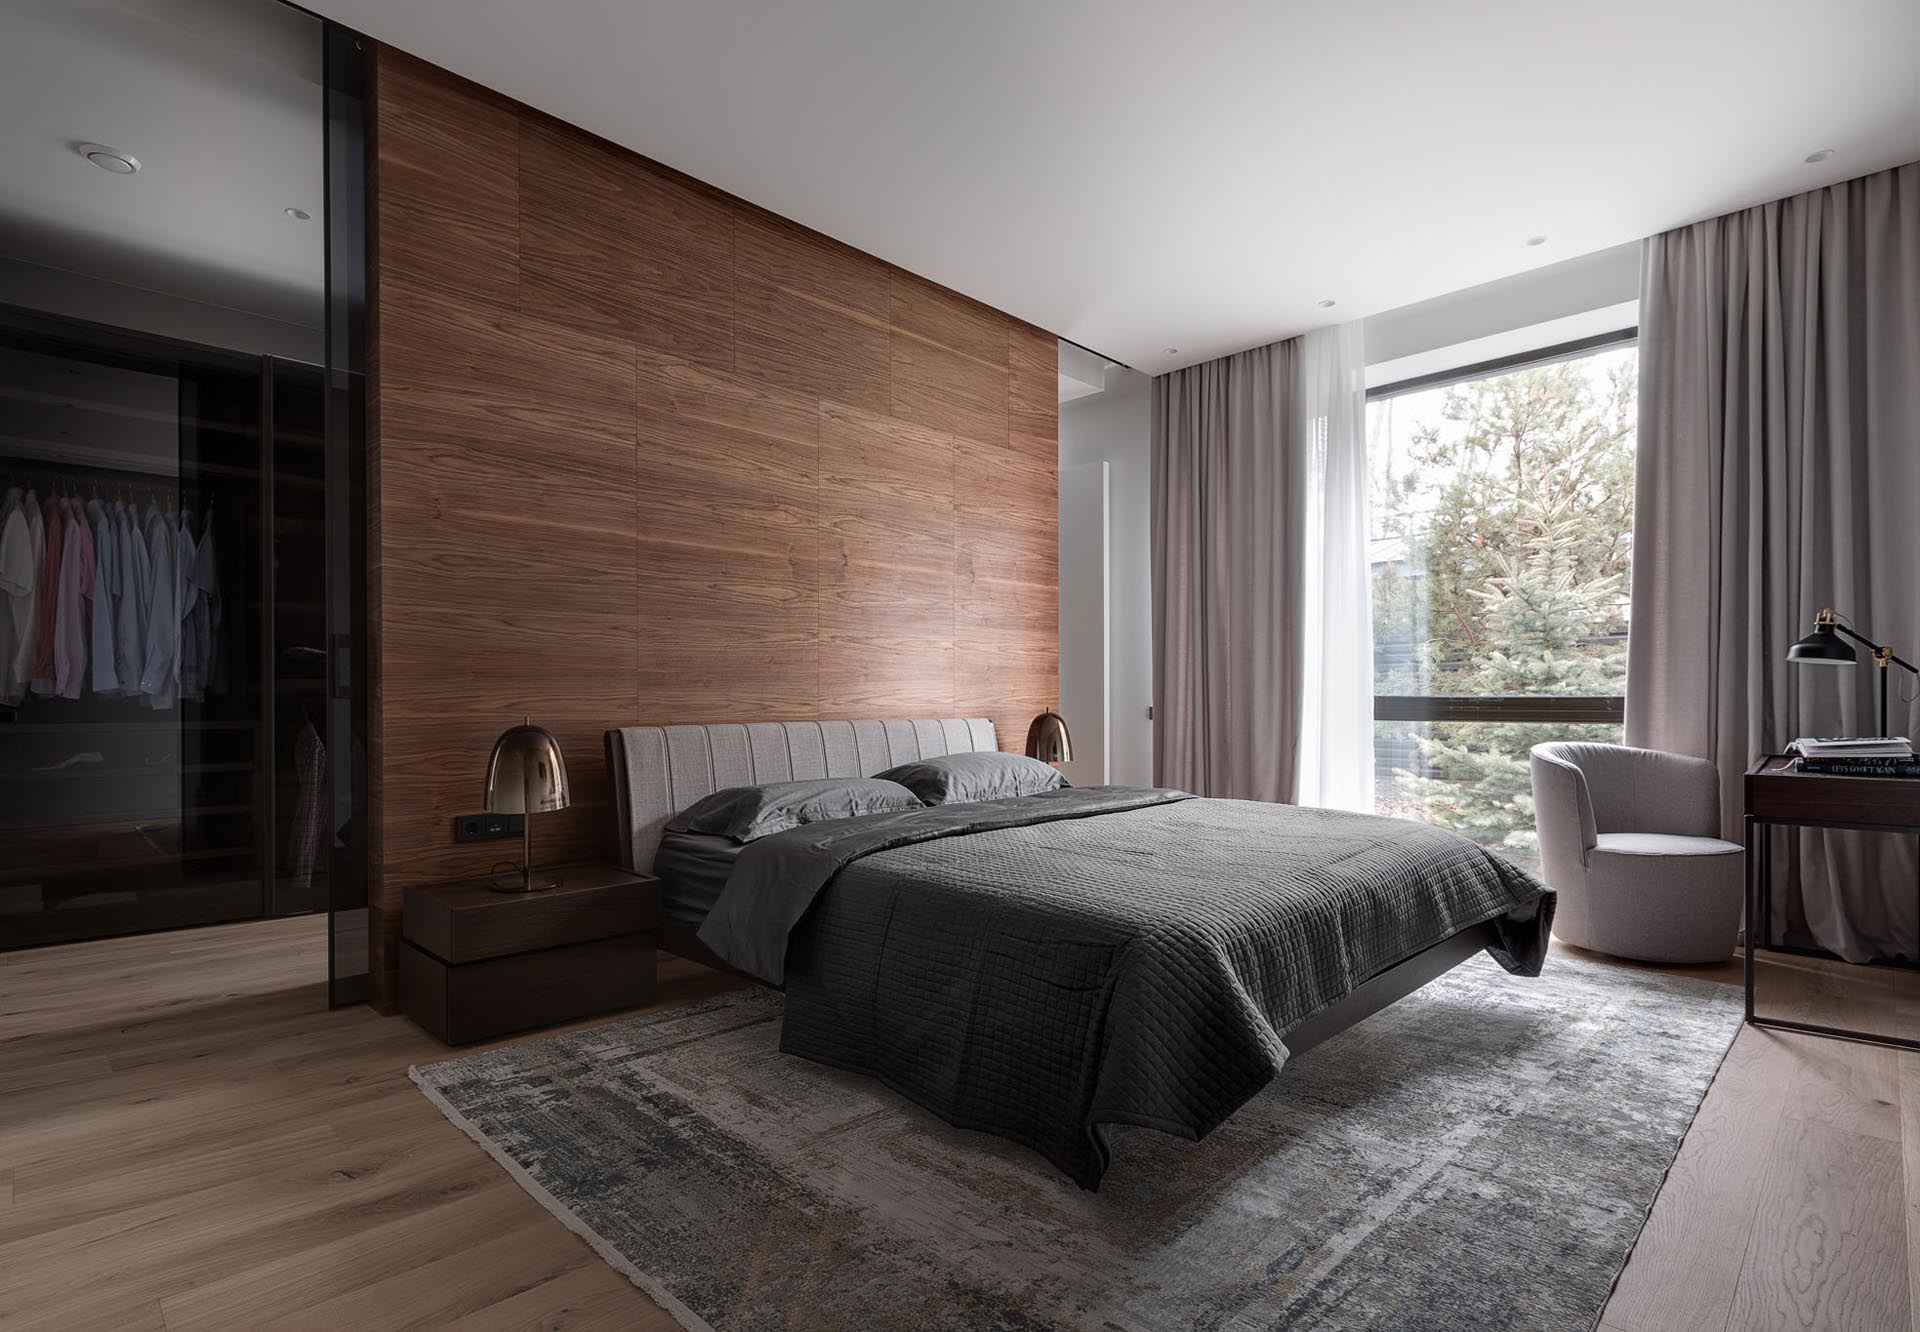 In this modern primary bedroom suite, there's a wood accent wall that separates the bedroom from the walk-through closet, that also includes black glass doors.